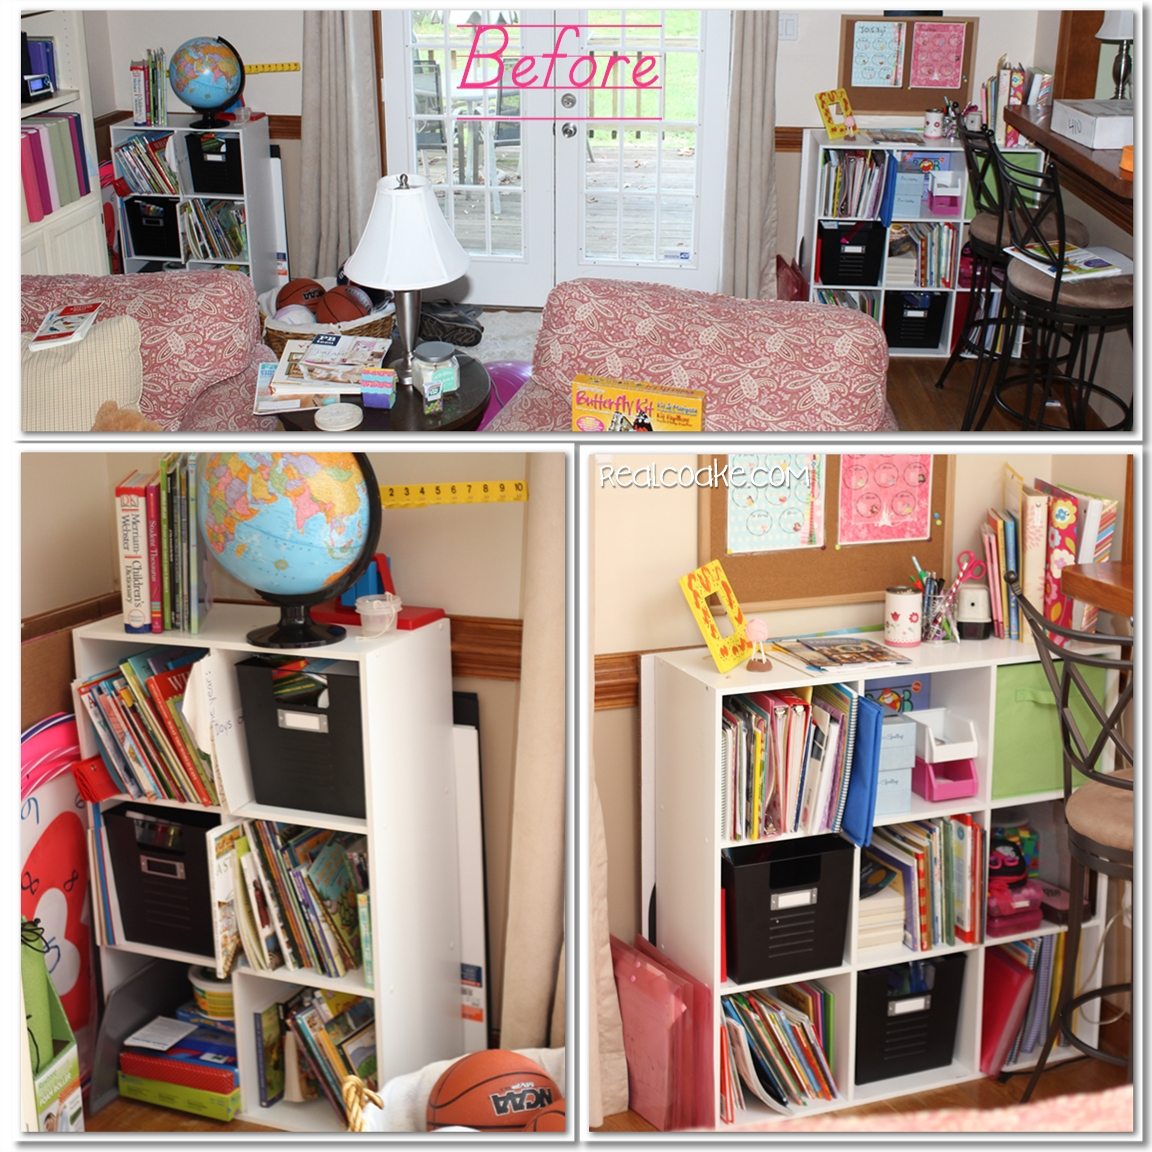 Homeschool Organization Ideas For Organizing All The Books And Supplies In Shelves Living Room